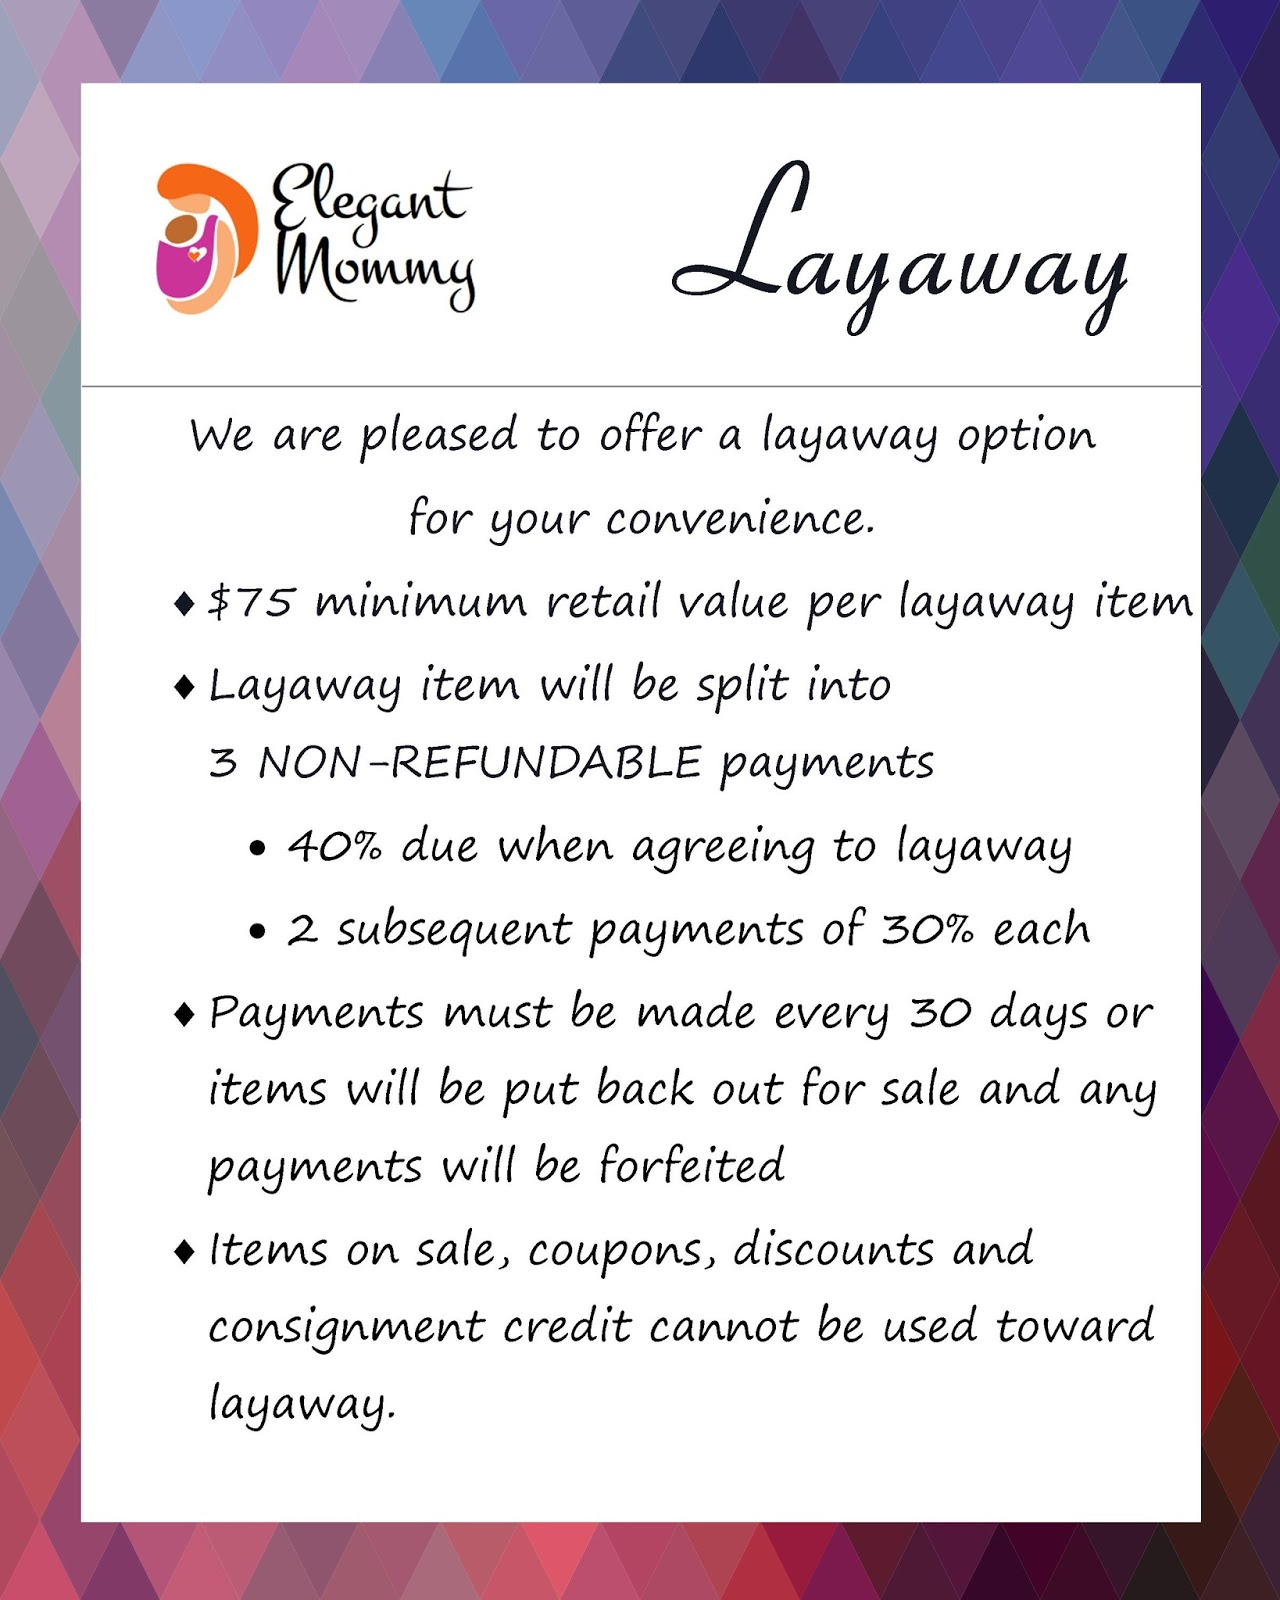 For Educated And Elegant Mommies Layaway At Elegant Mommy